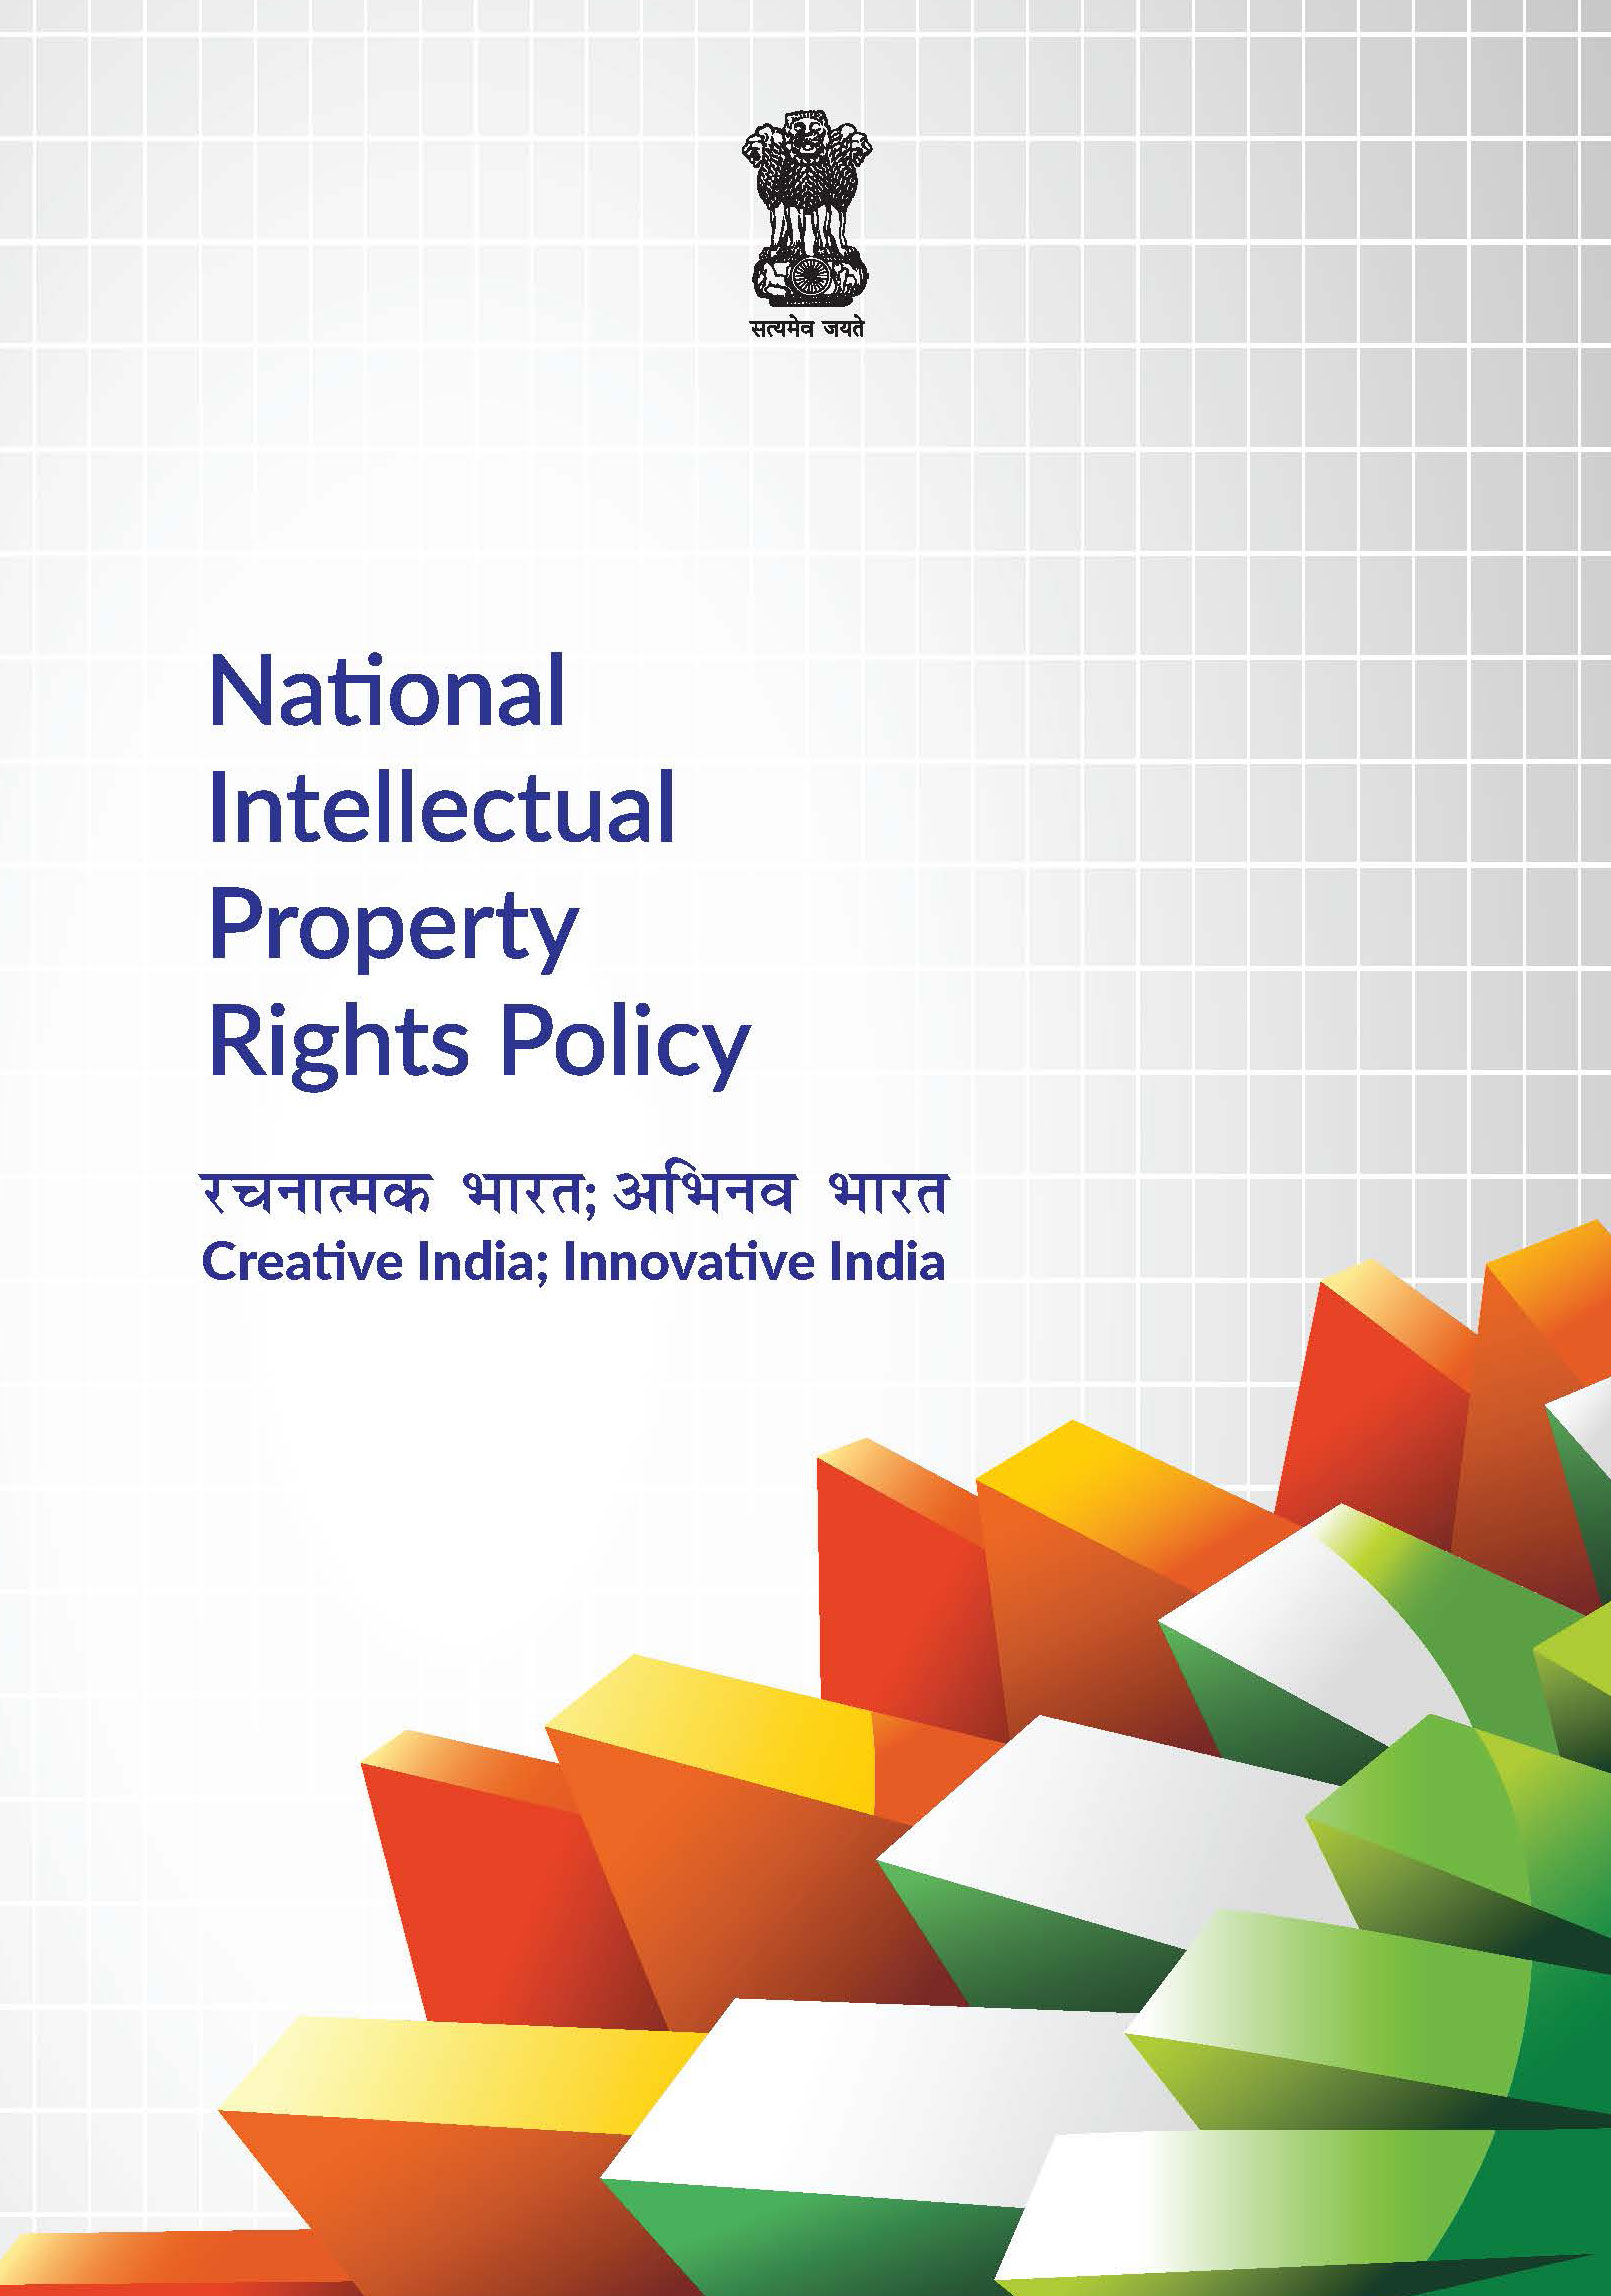 Wallpaper of National Intellectual property Rights Policy